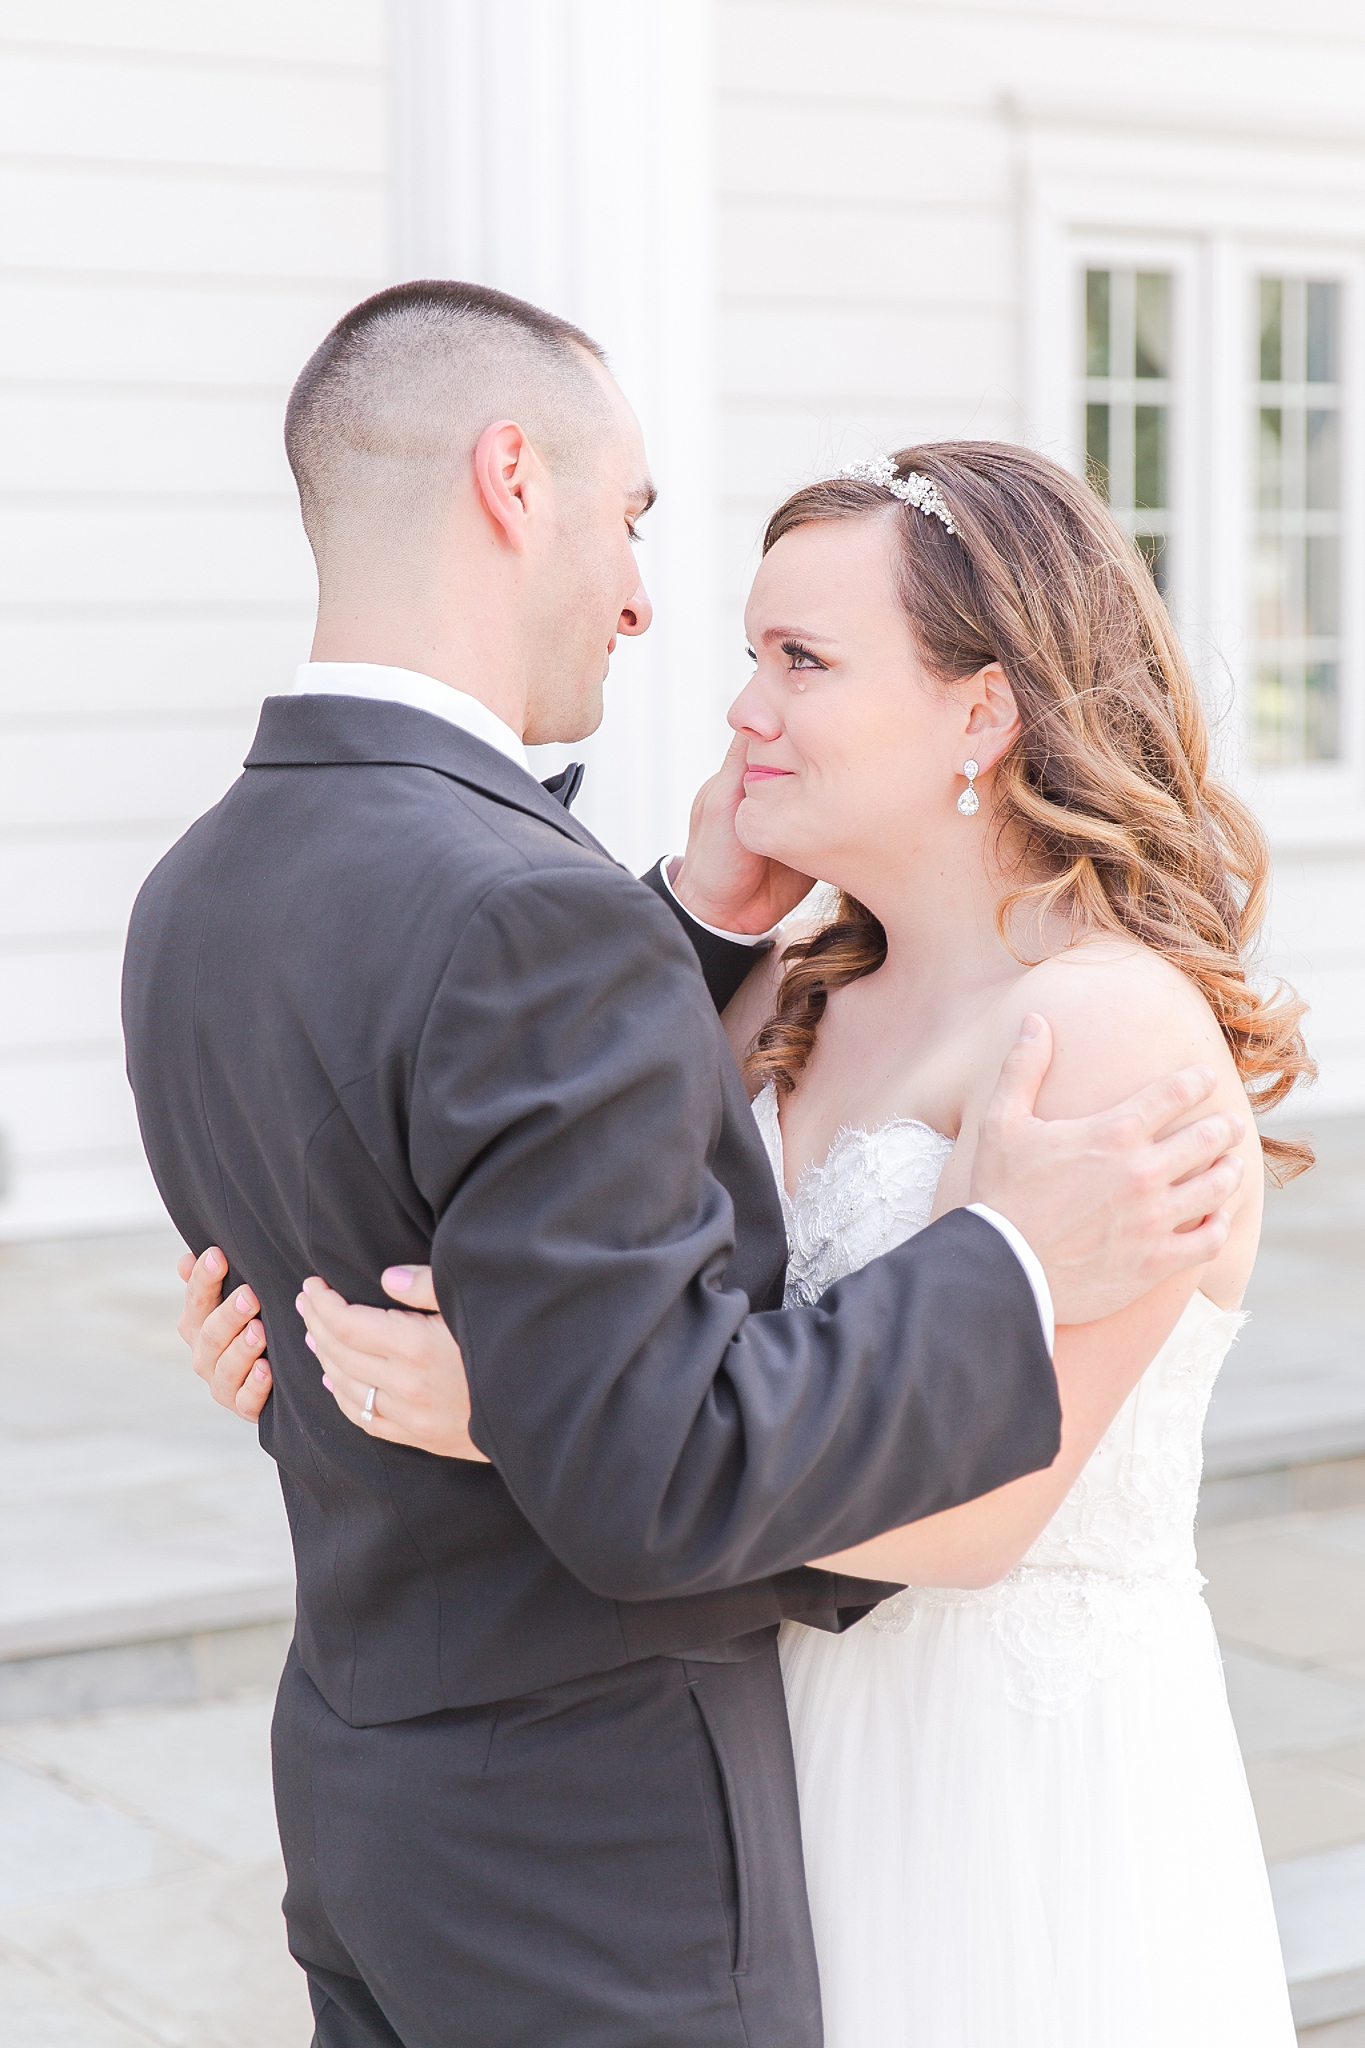 joyful-romantic-modern-laid-back-wedding-photography-in-detroit-ann-arbor-northern-mi-and-chicago-by-courtney-carolyn-photography_0051.jpg